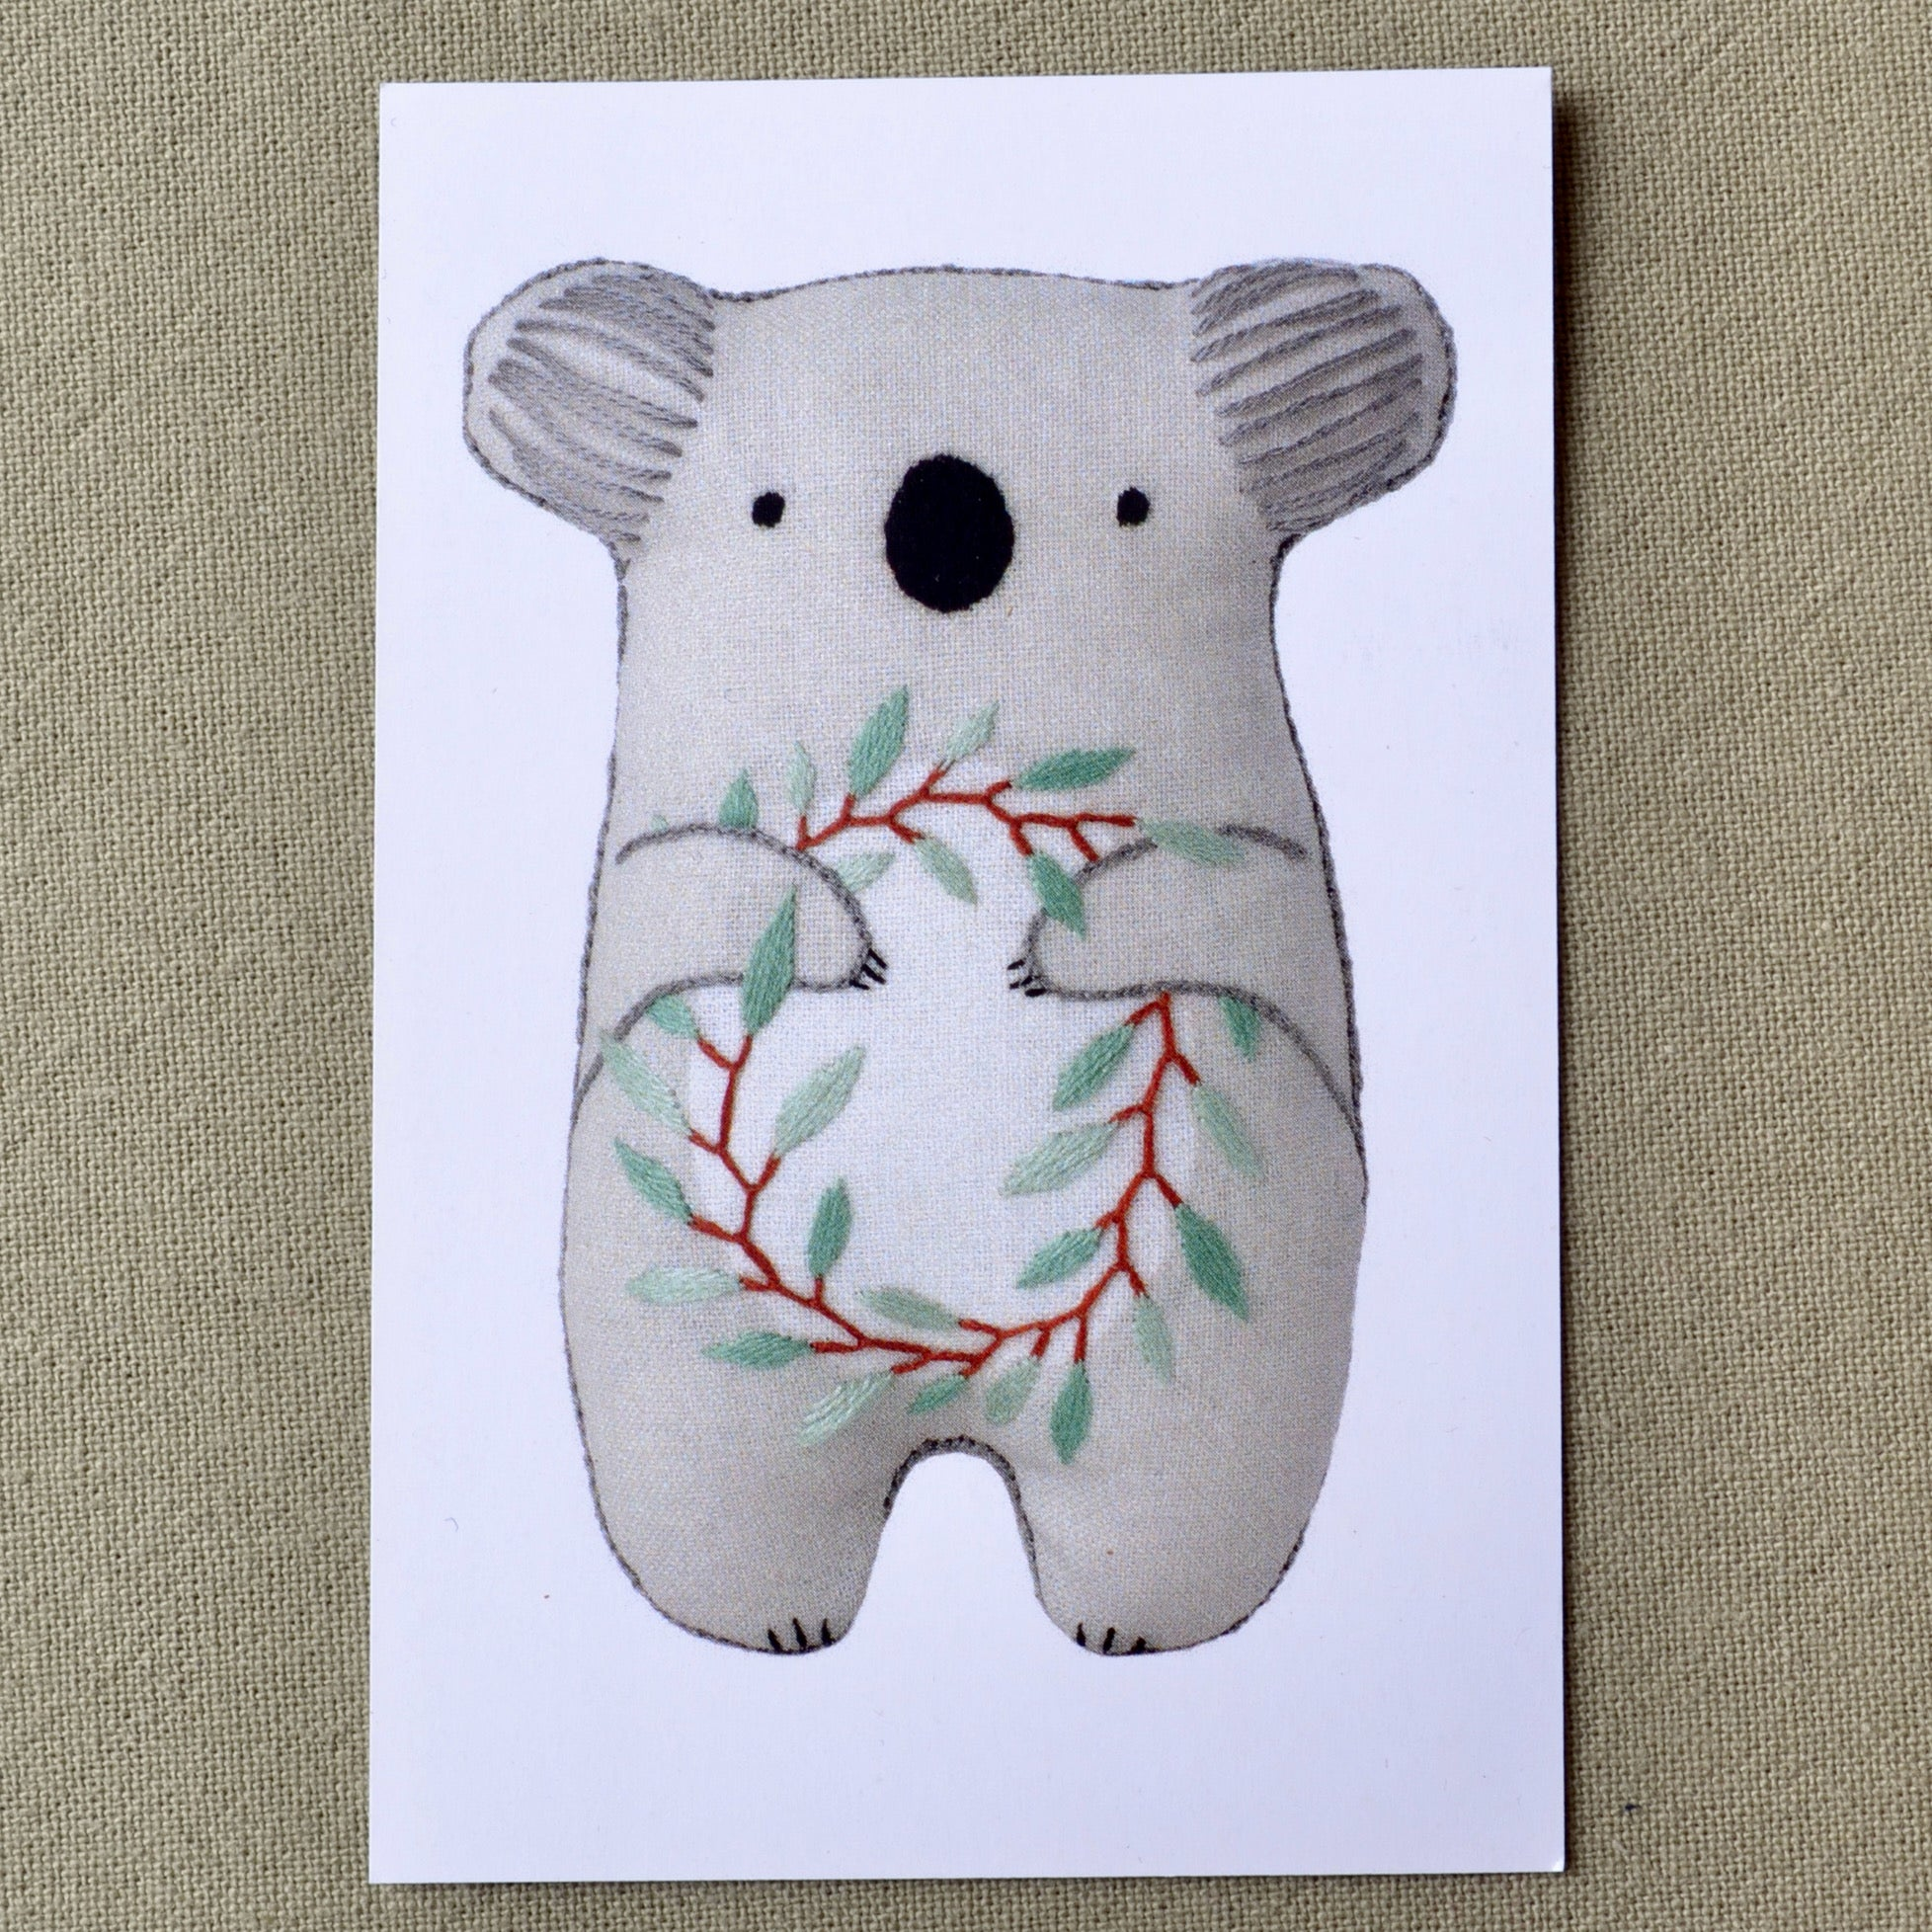 Kiriki embroidery kit, Koala